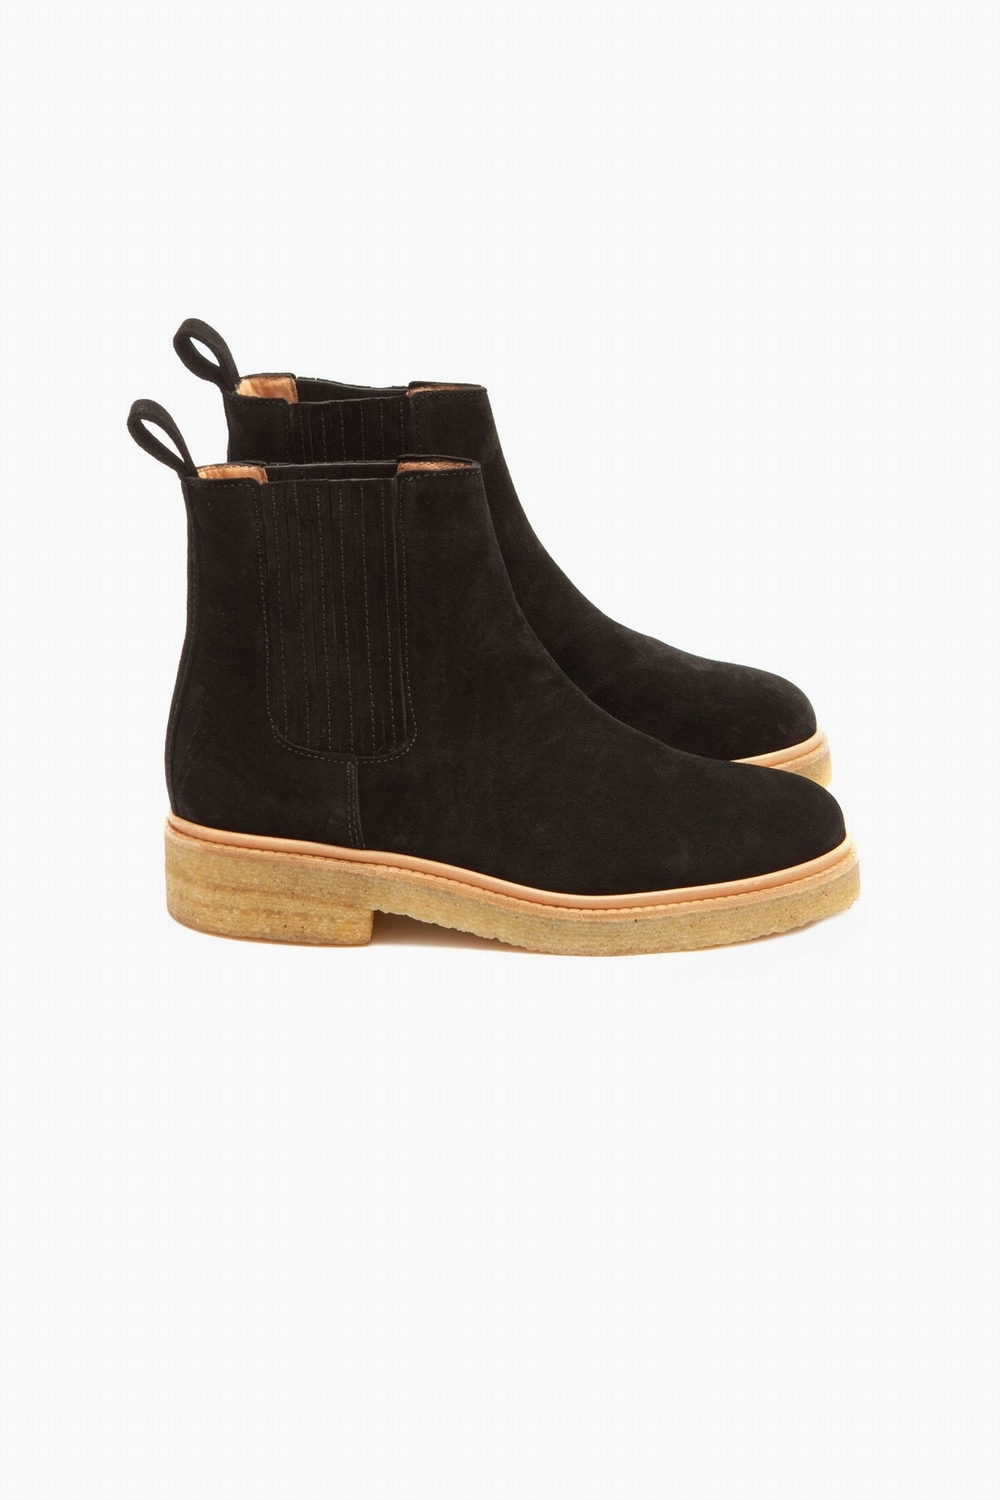 Suede Zespa Chelsea Centre Commercial Boots aSEEwCq